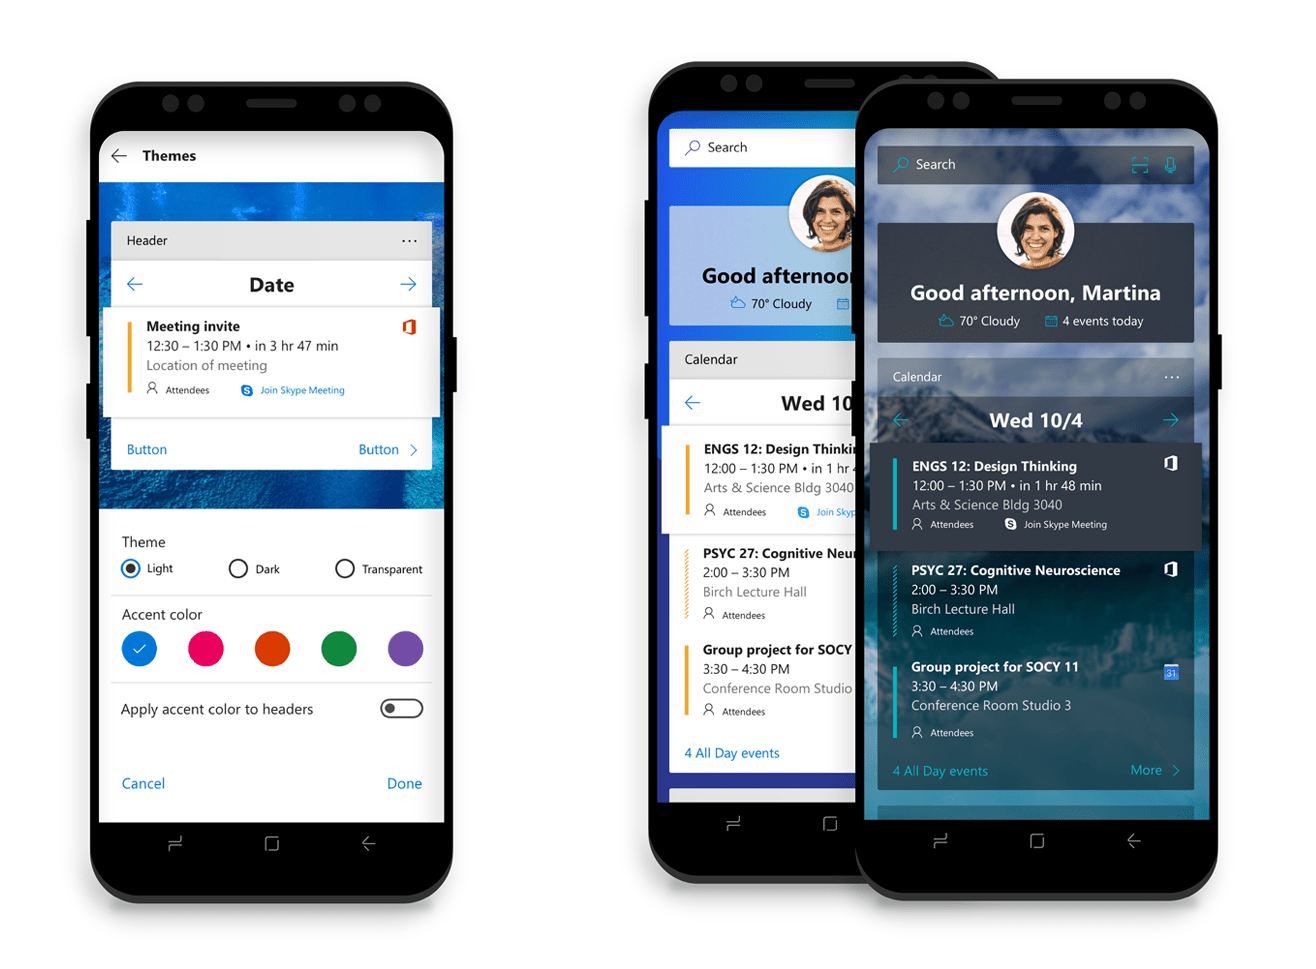 Microsoft Launcher Preview for Android released: that's new